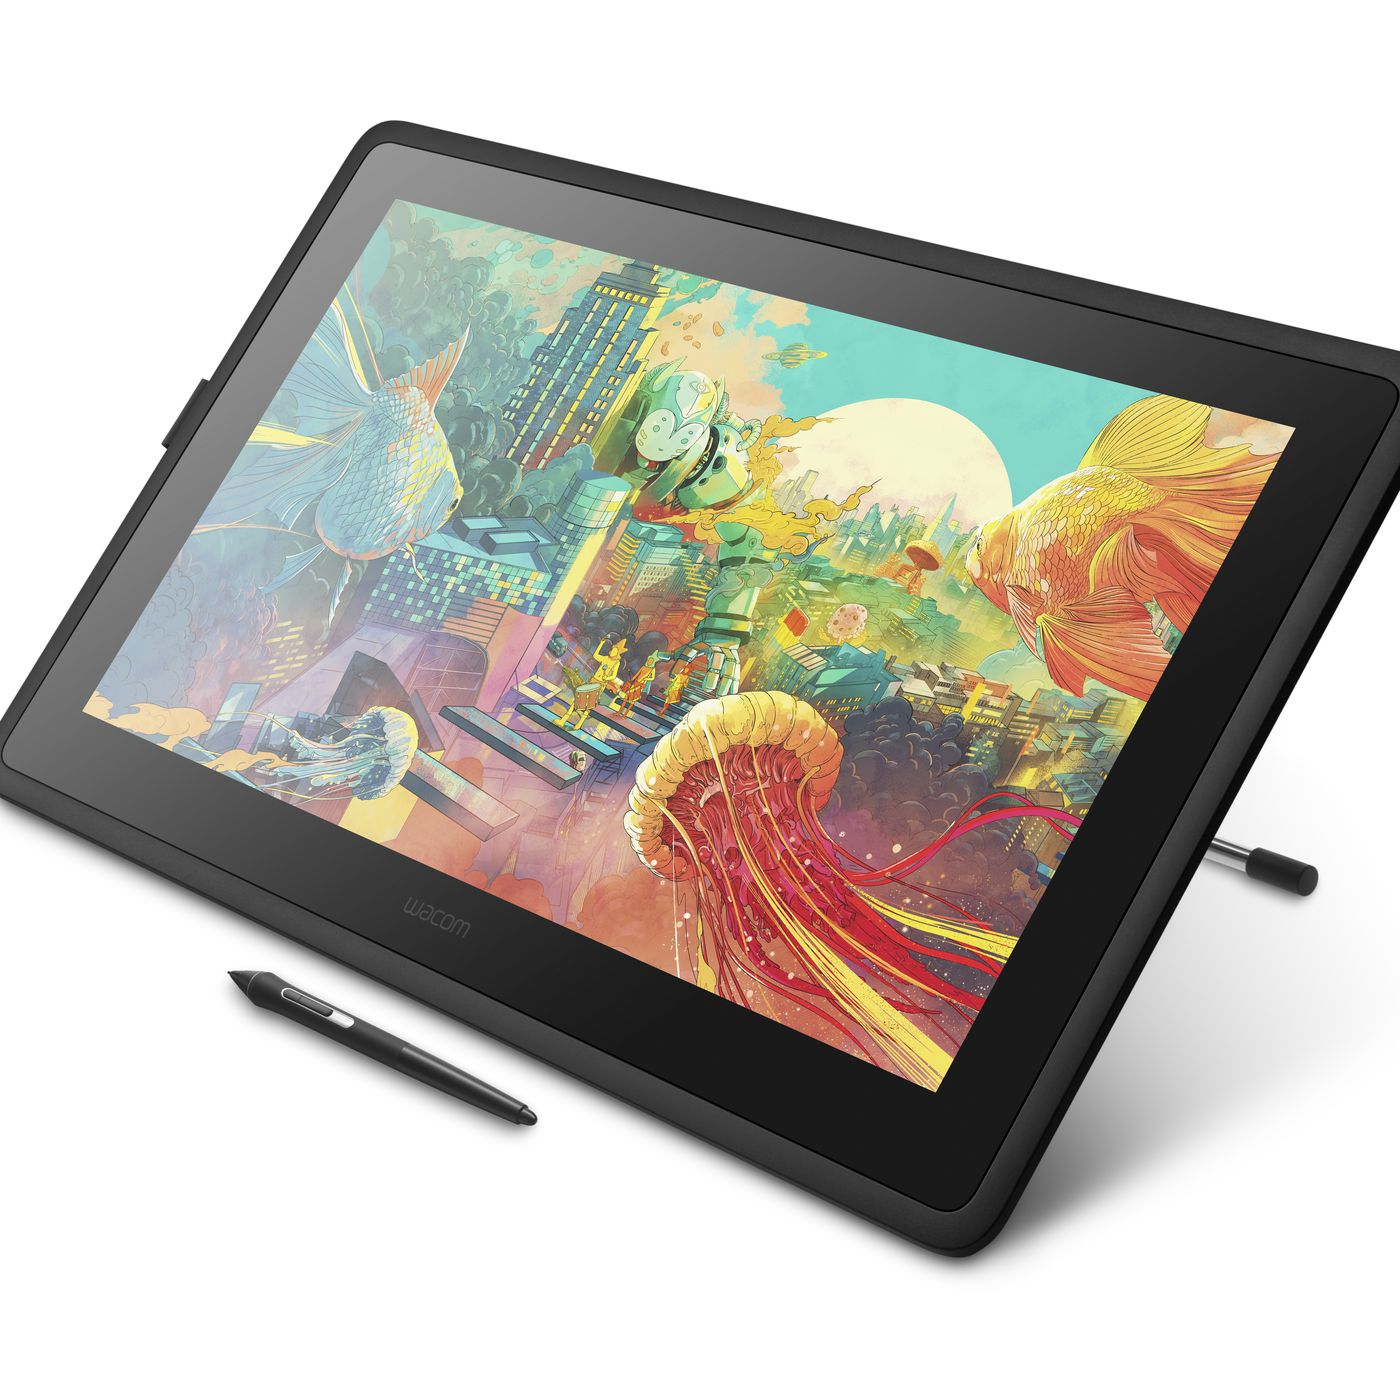 Wacom S New Cintiq 22 Is A Bigger Addition To Its Entry Level Pen Display Line The Verge